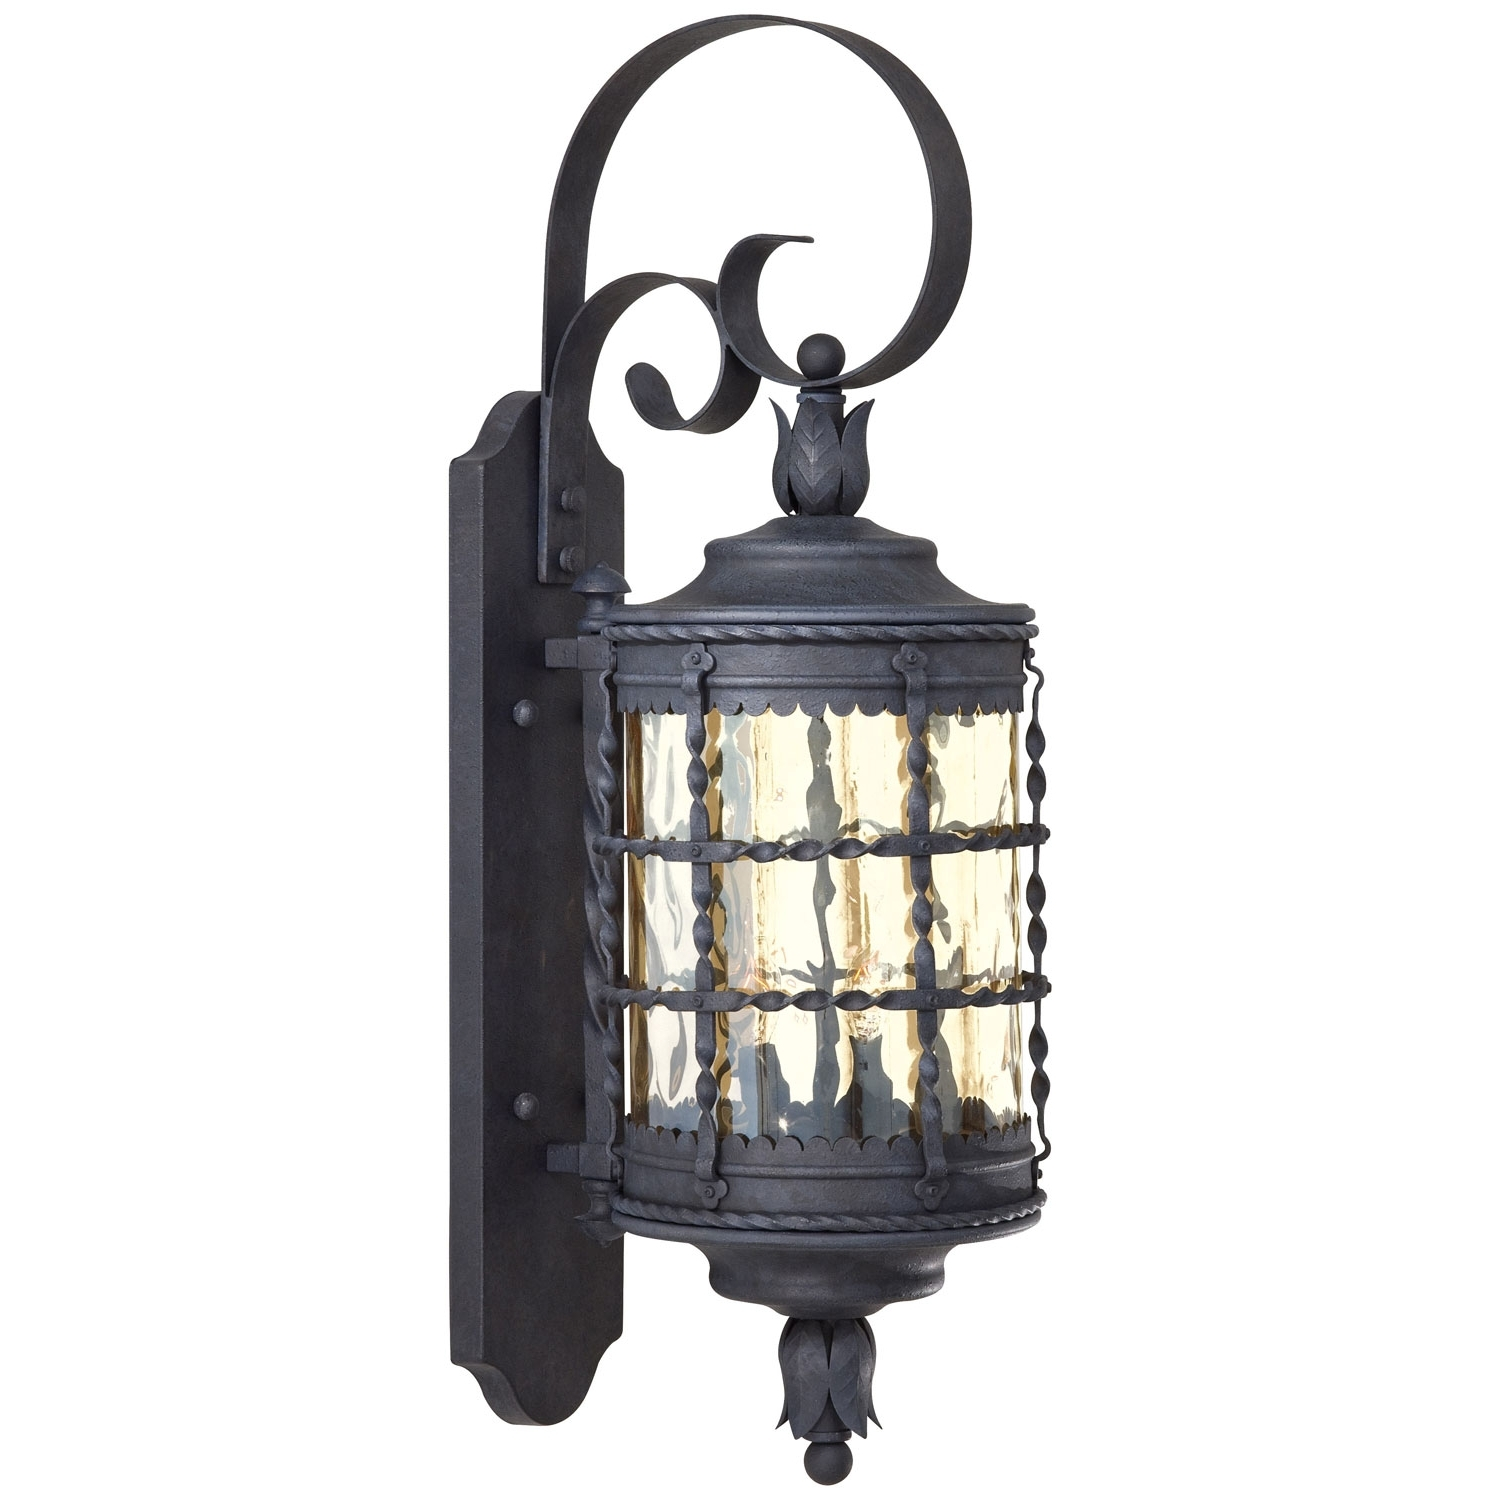 Large Outdoor Wall Lanterns Regarding 2019 Minka Lavery Mallorca Exterior Wall Mount 8881 A (View 8 of 20)